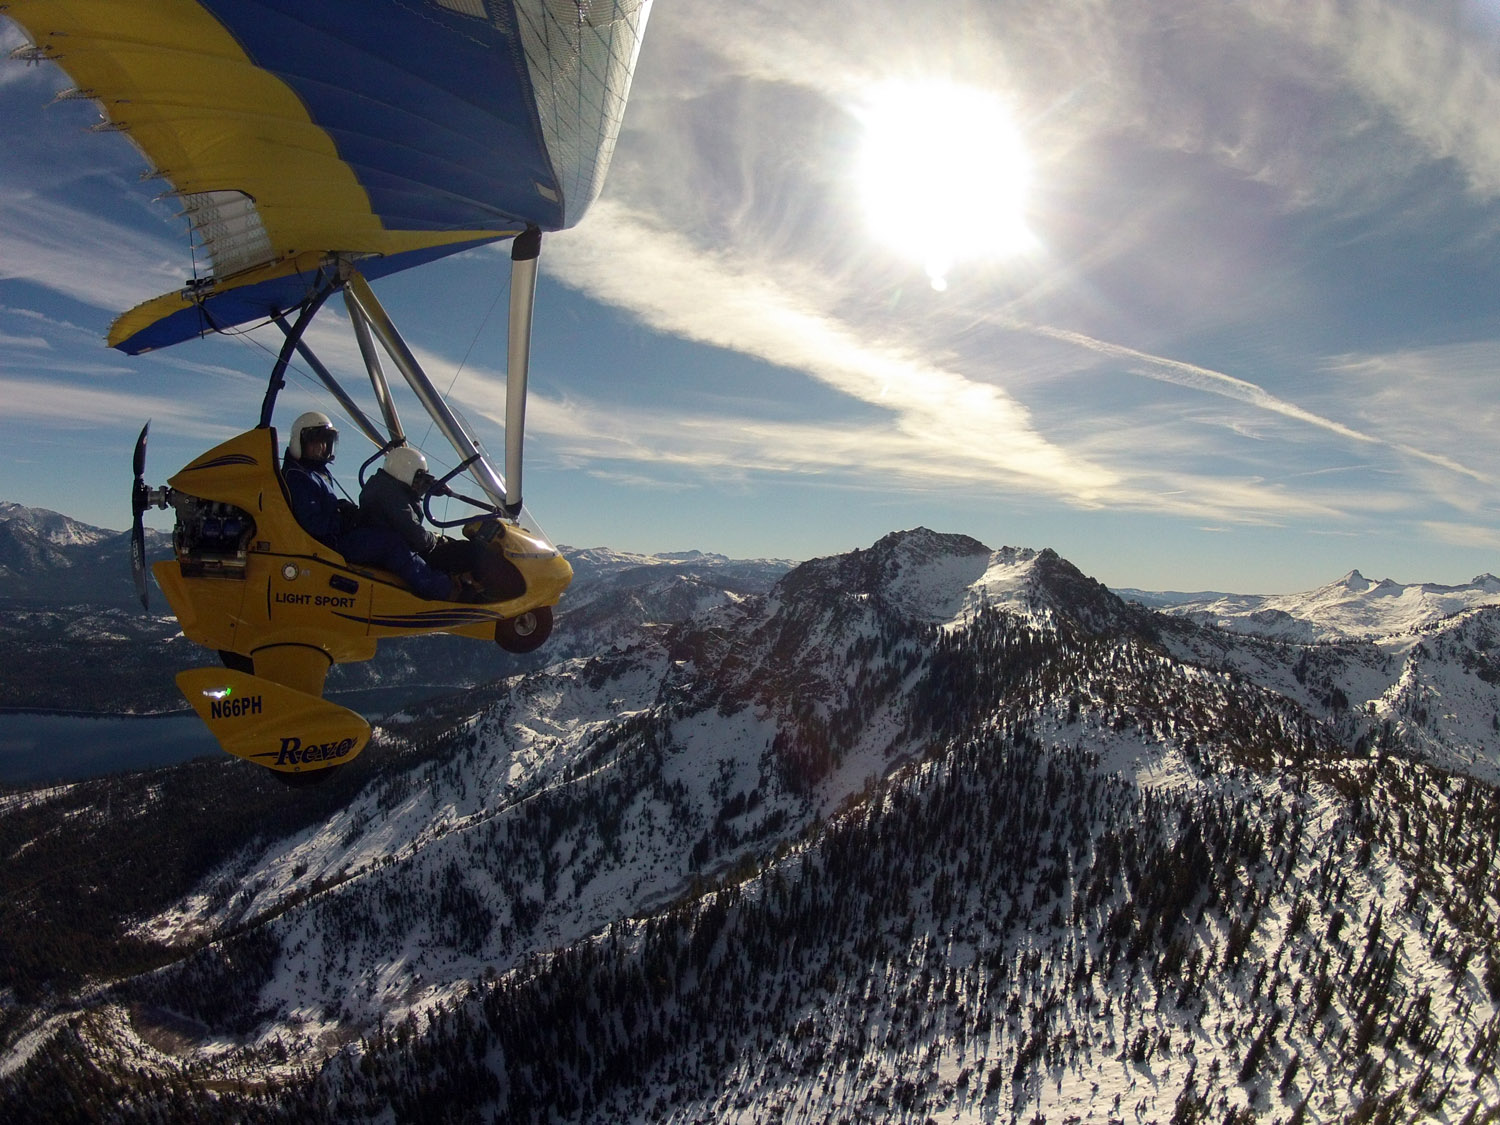 Early Morning Hang Gliding above snow-capped Sierras